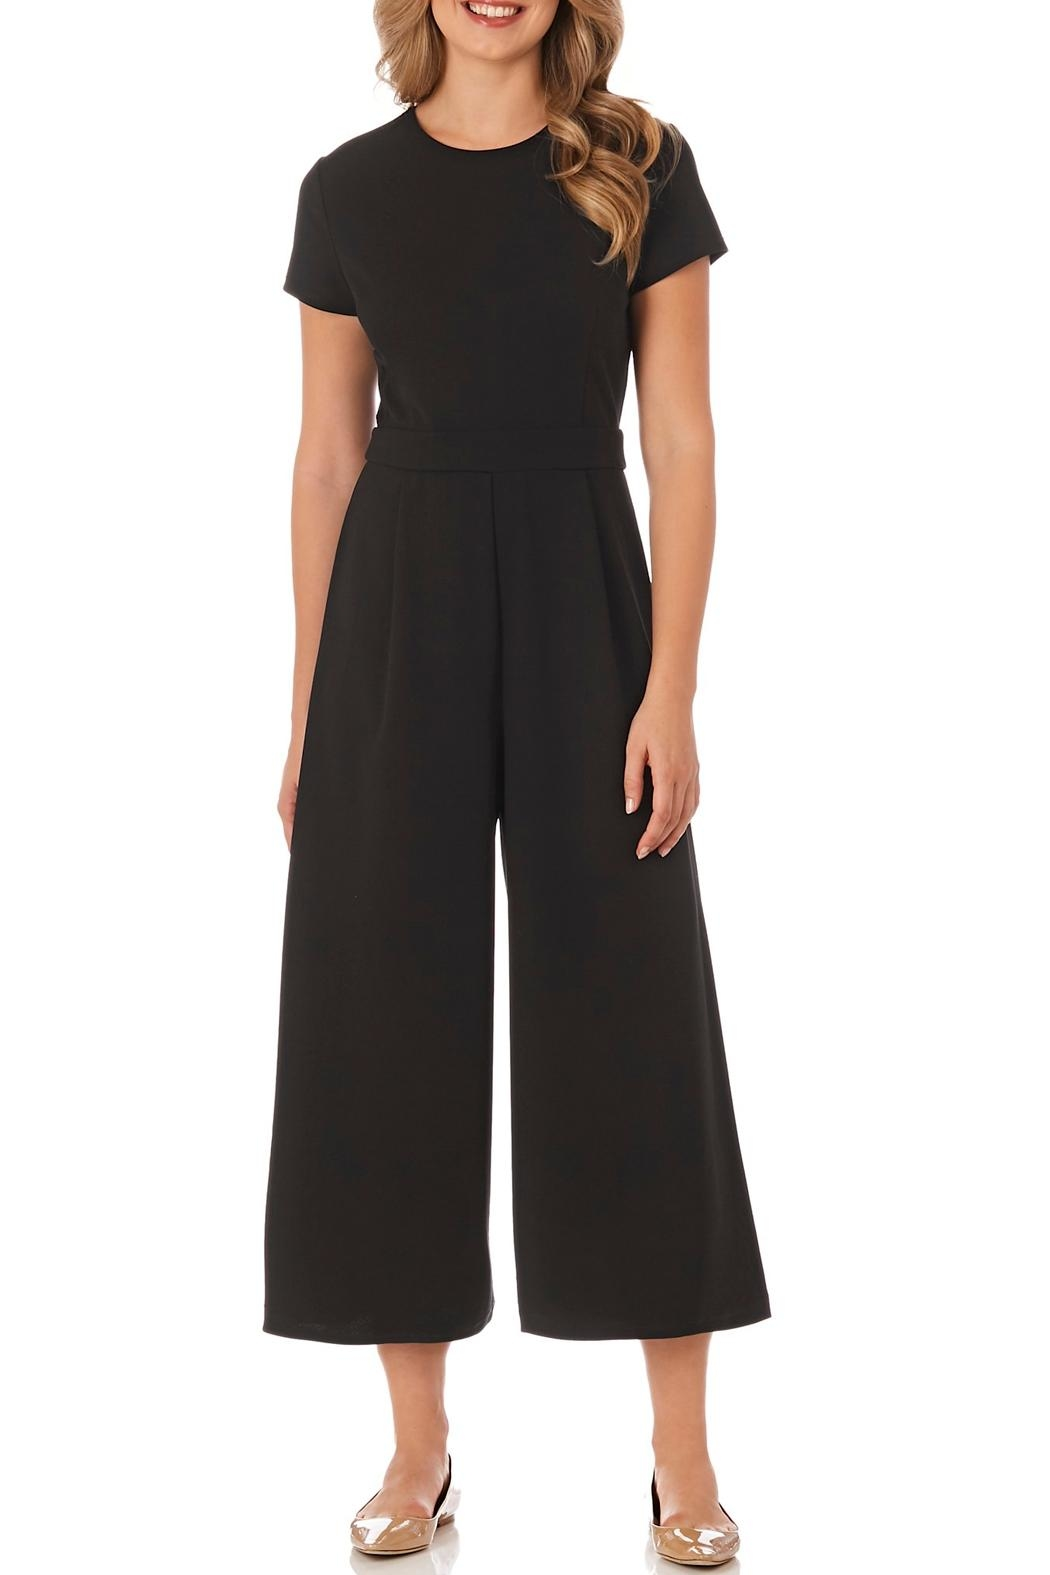 Jude Connally Blaire Stretch-Crepe Jumpsuit - Main Image